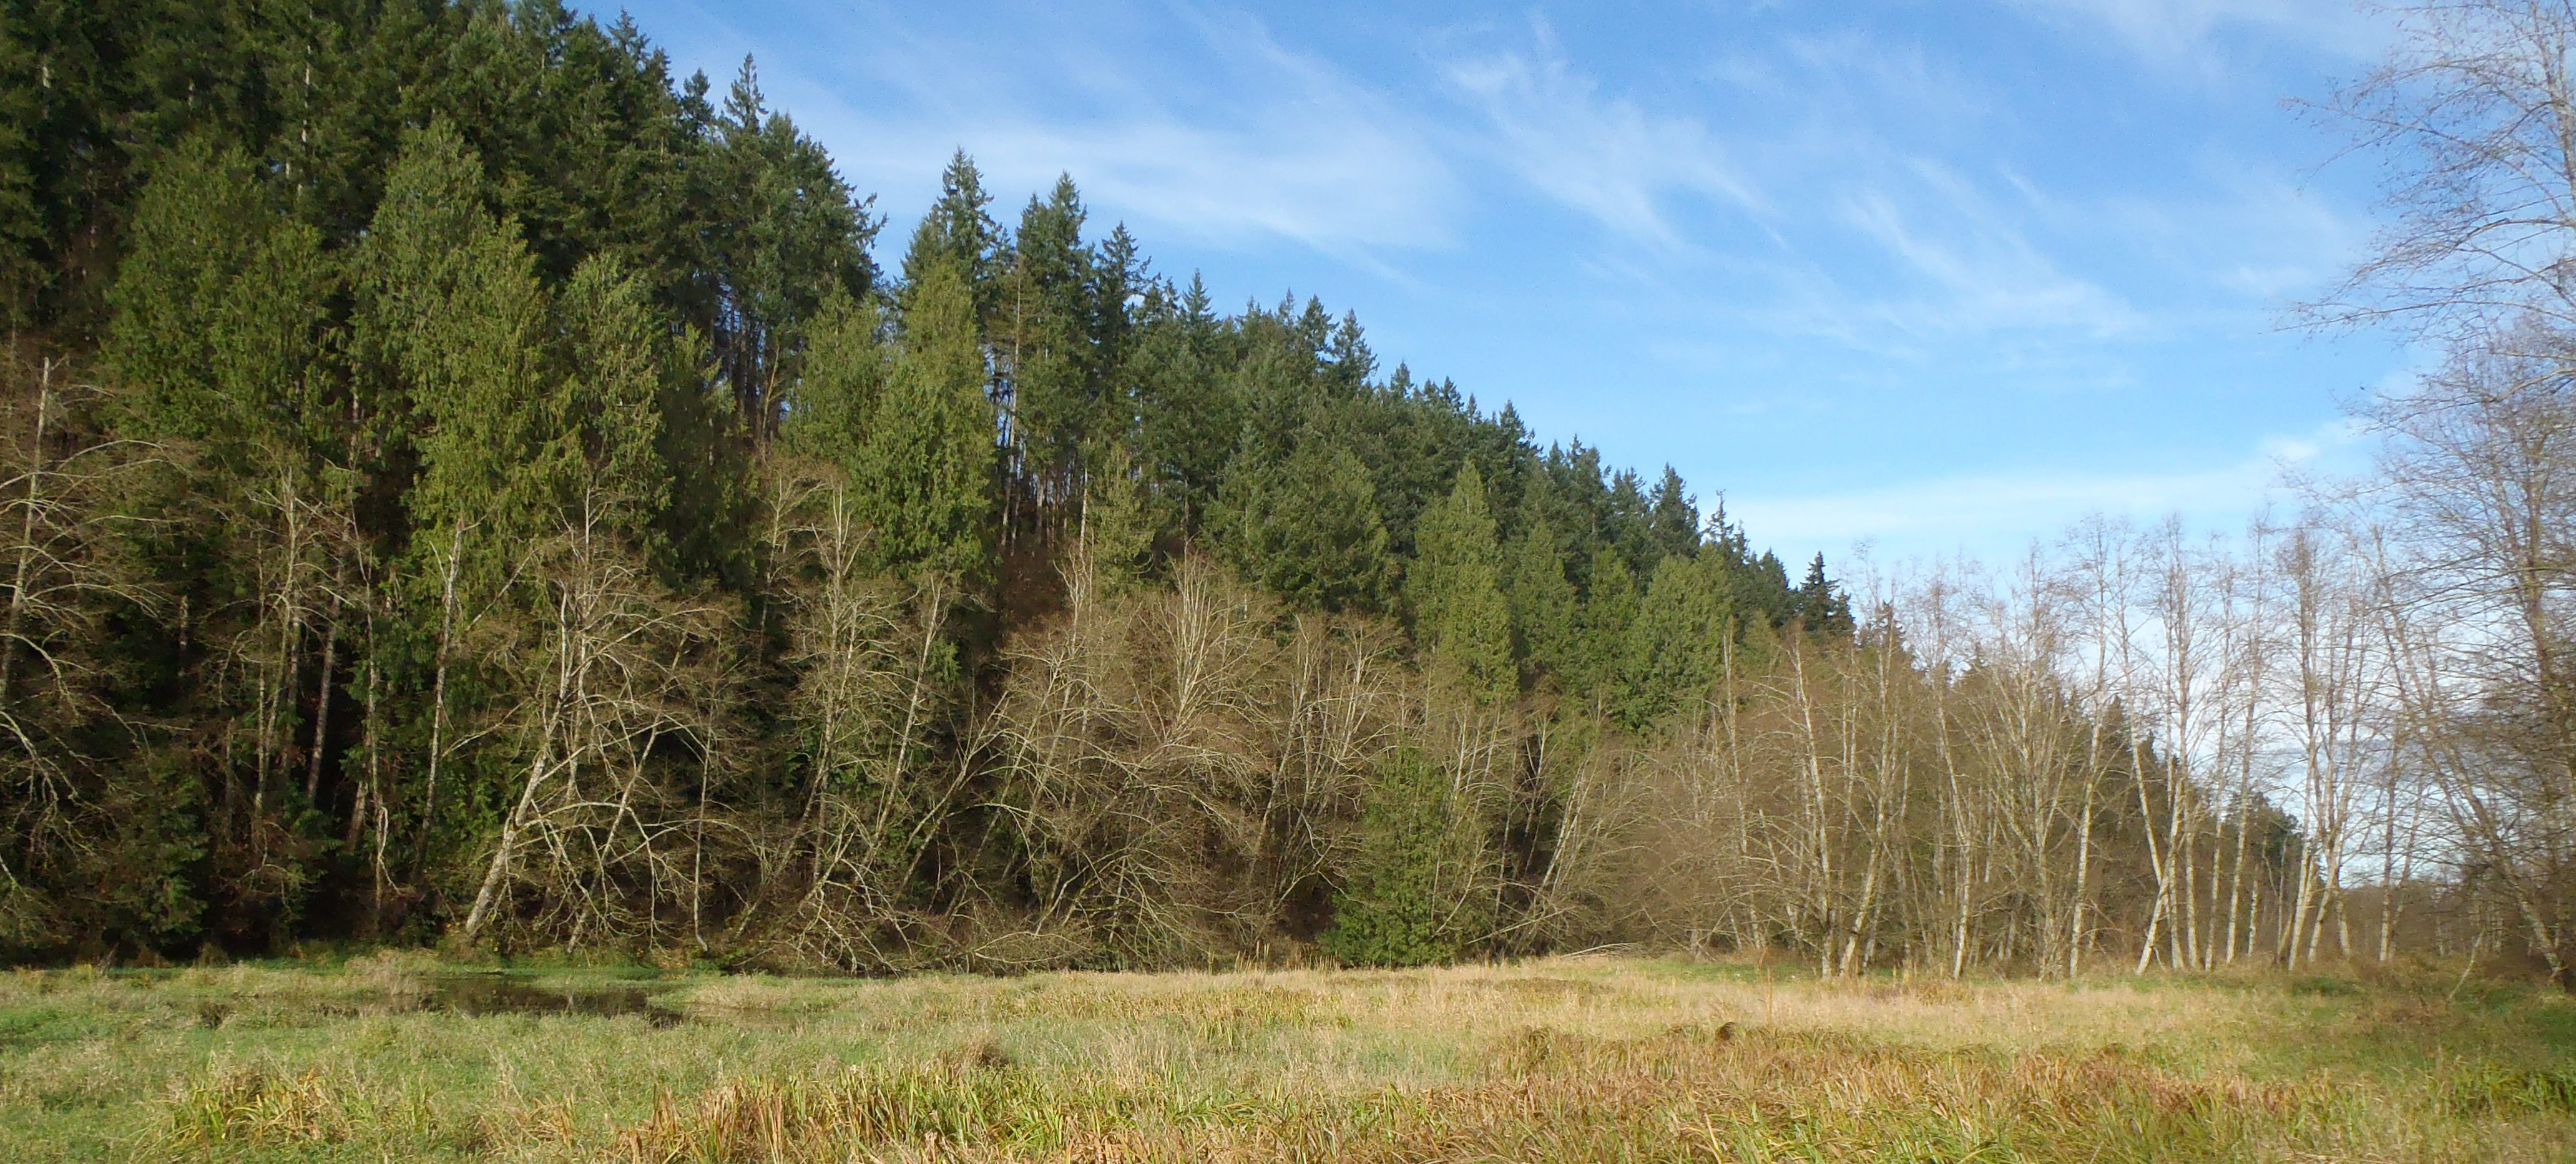 Nisqually River Side Channel at Thurston Ridge